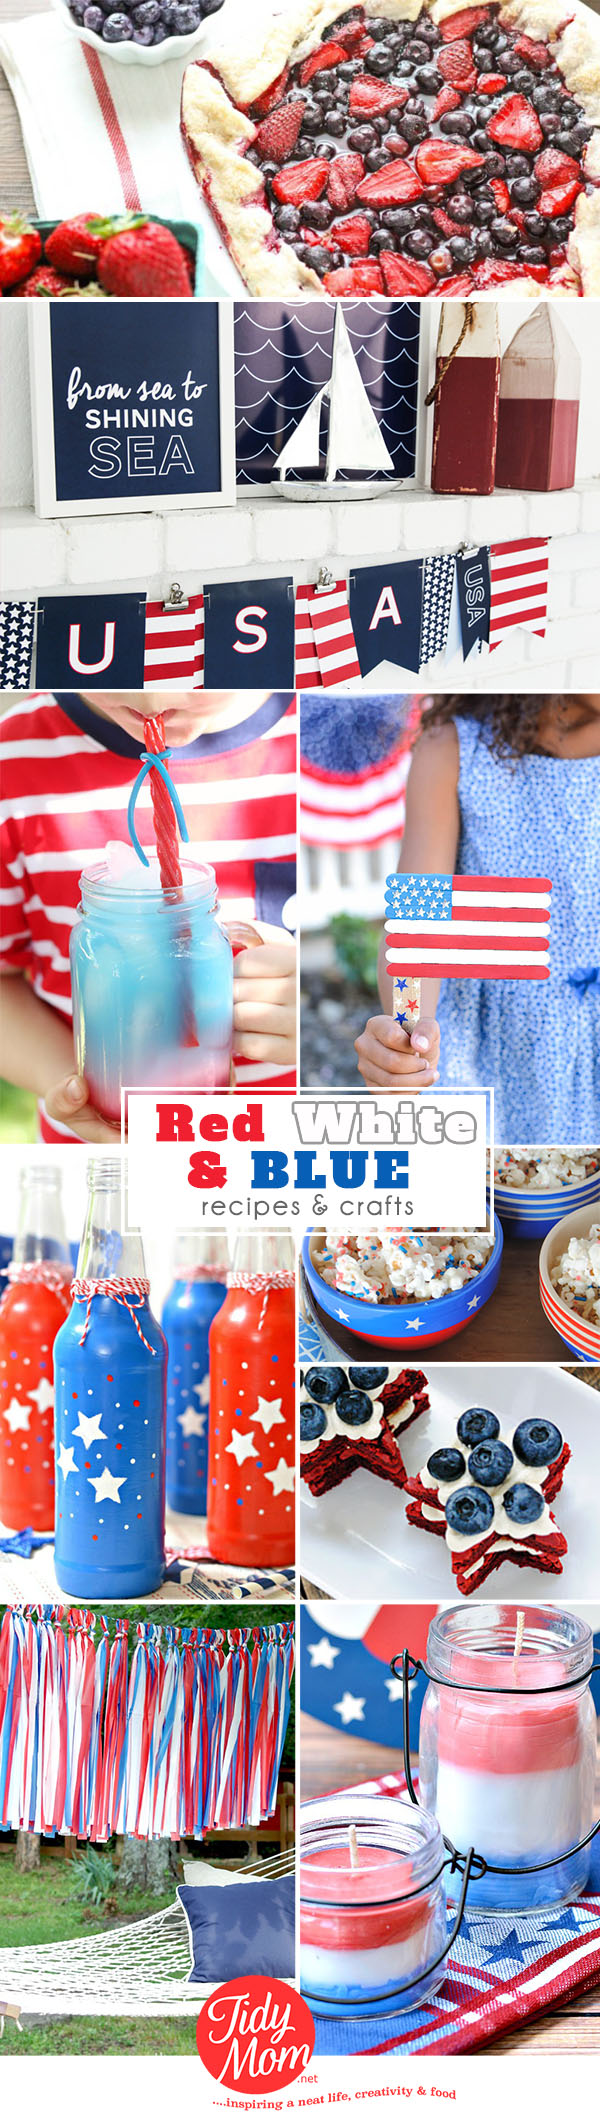 Three Cheers for the Red, White and Blue!! find patriotic recipes and craft fourth of July ideas at TidyMom.net